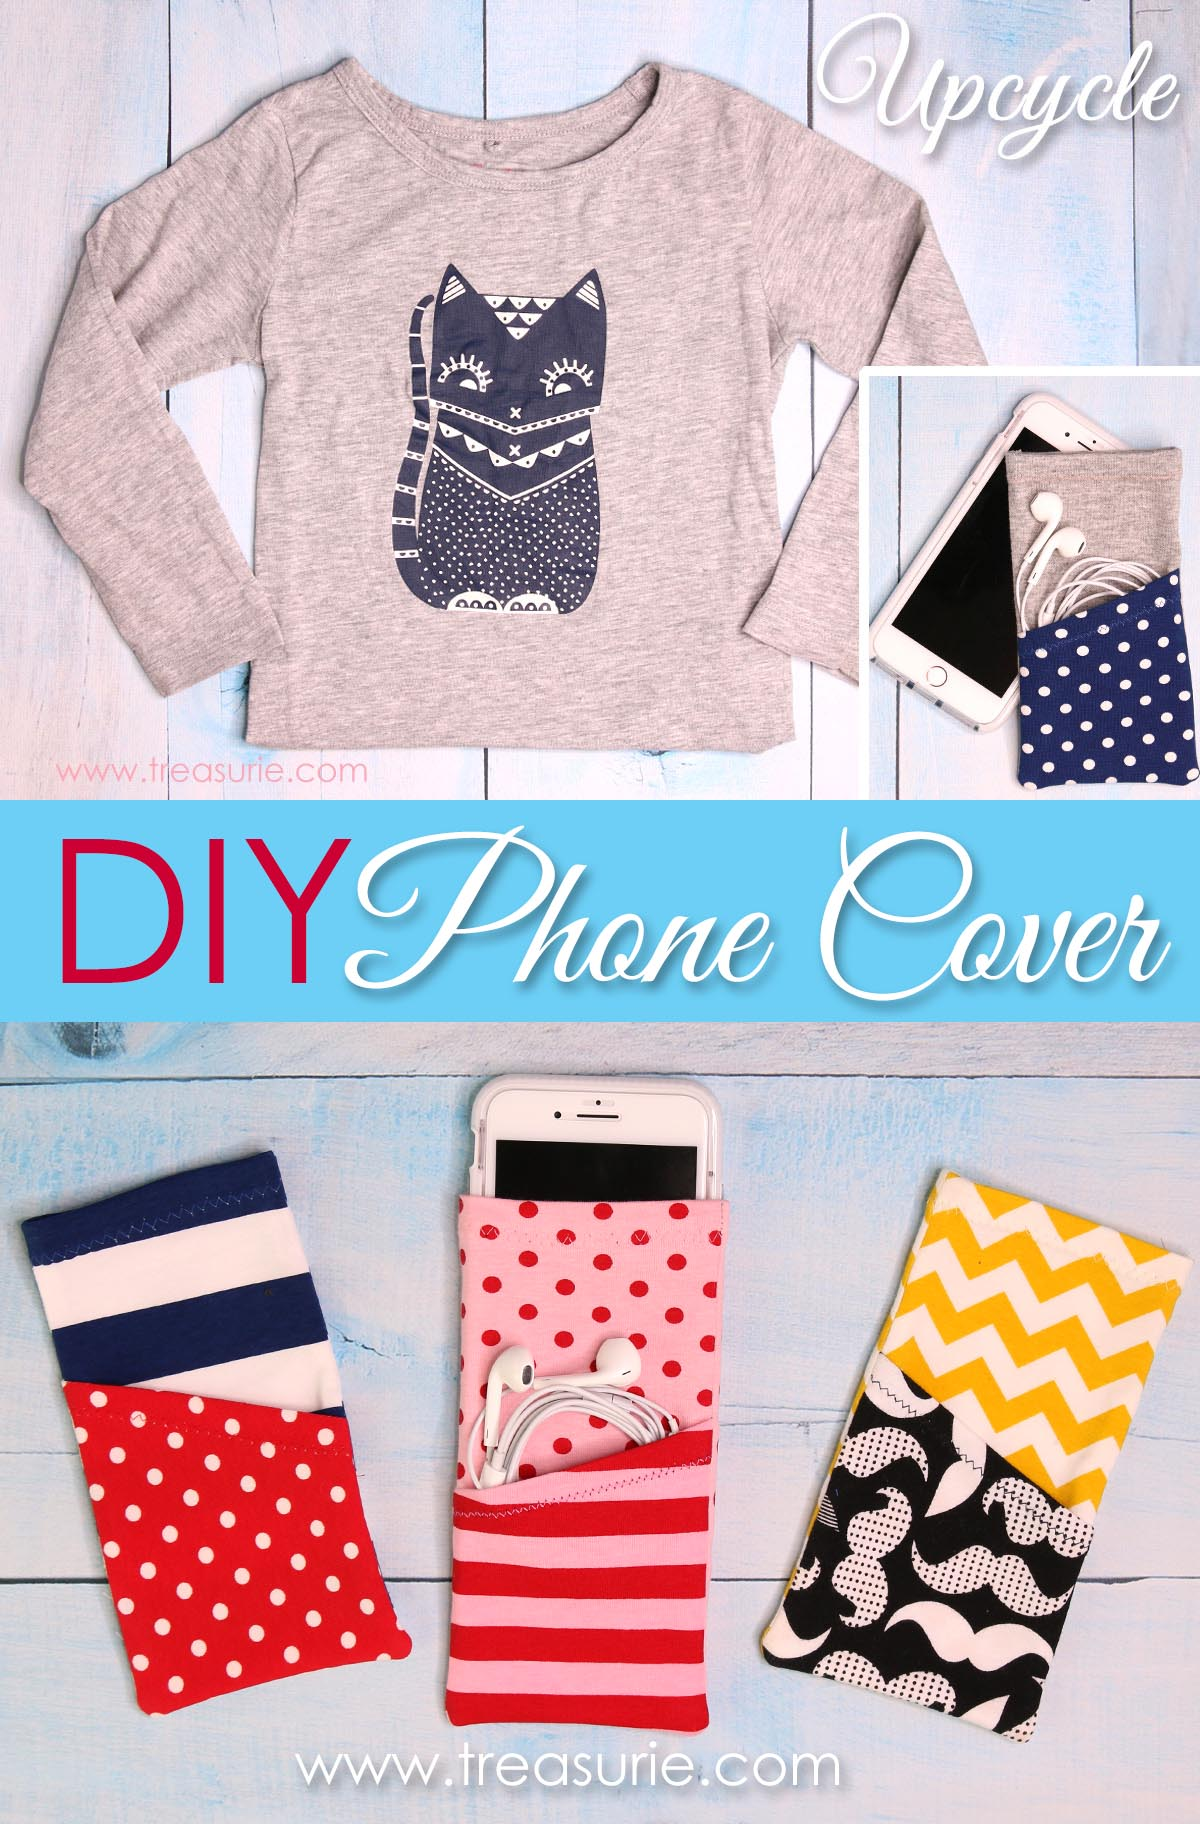 diy phone cover